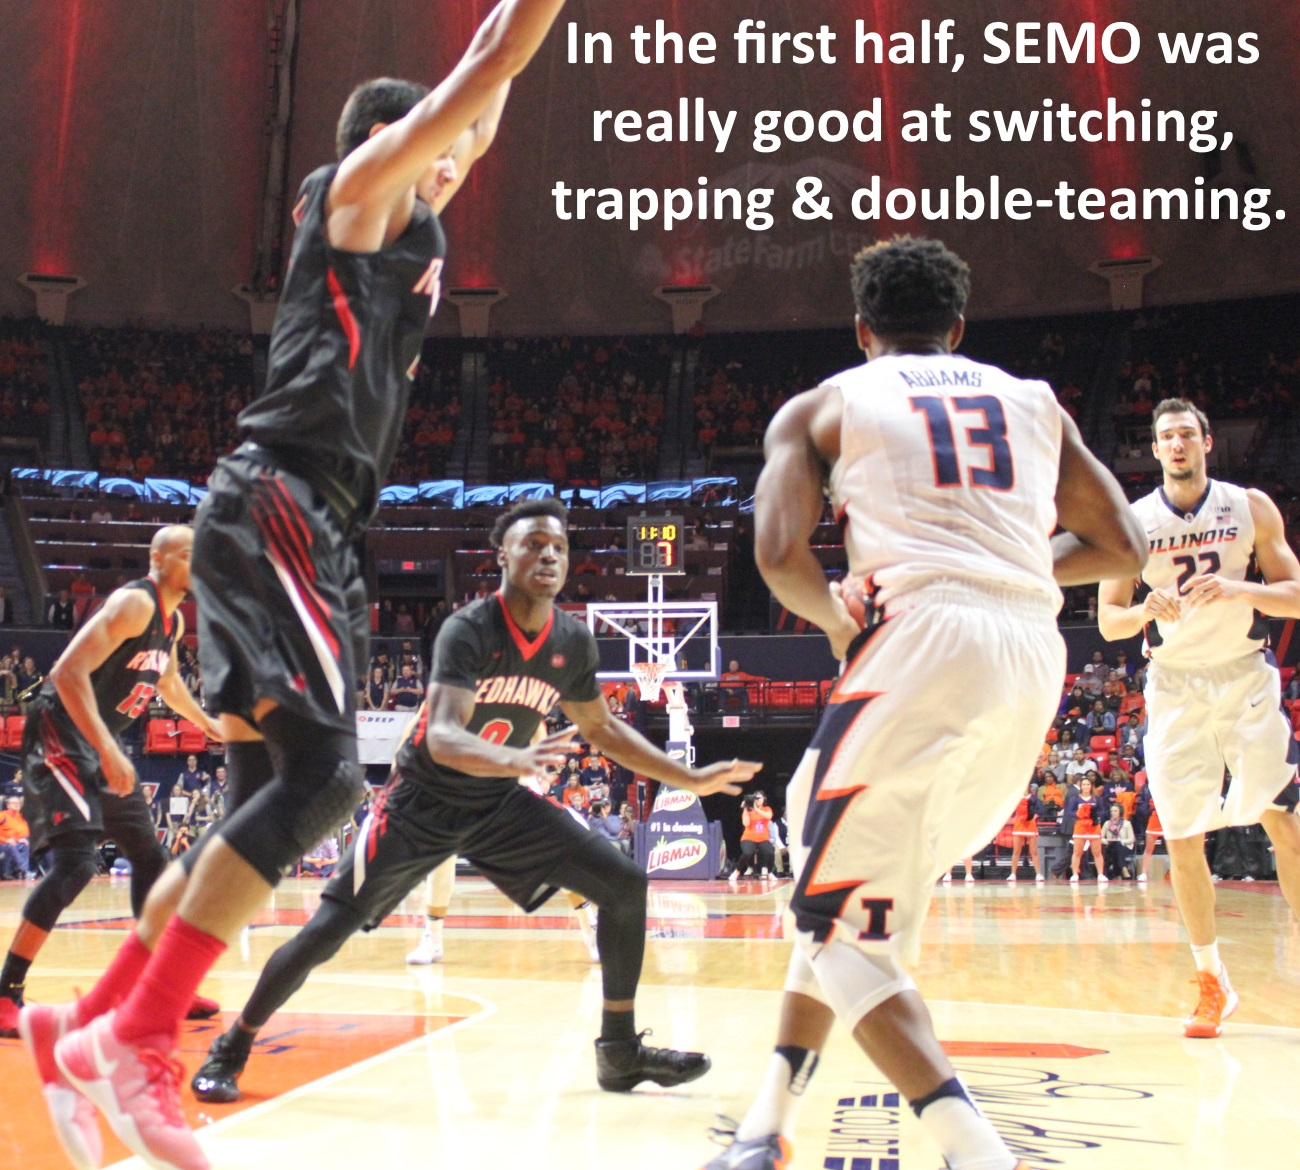 semo-trapping-and-double-teaming-illini